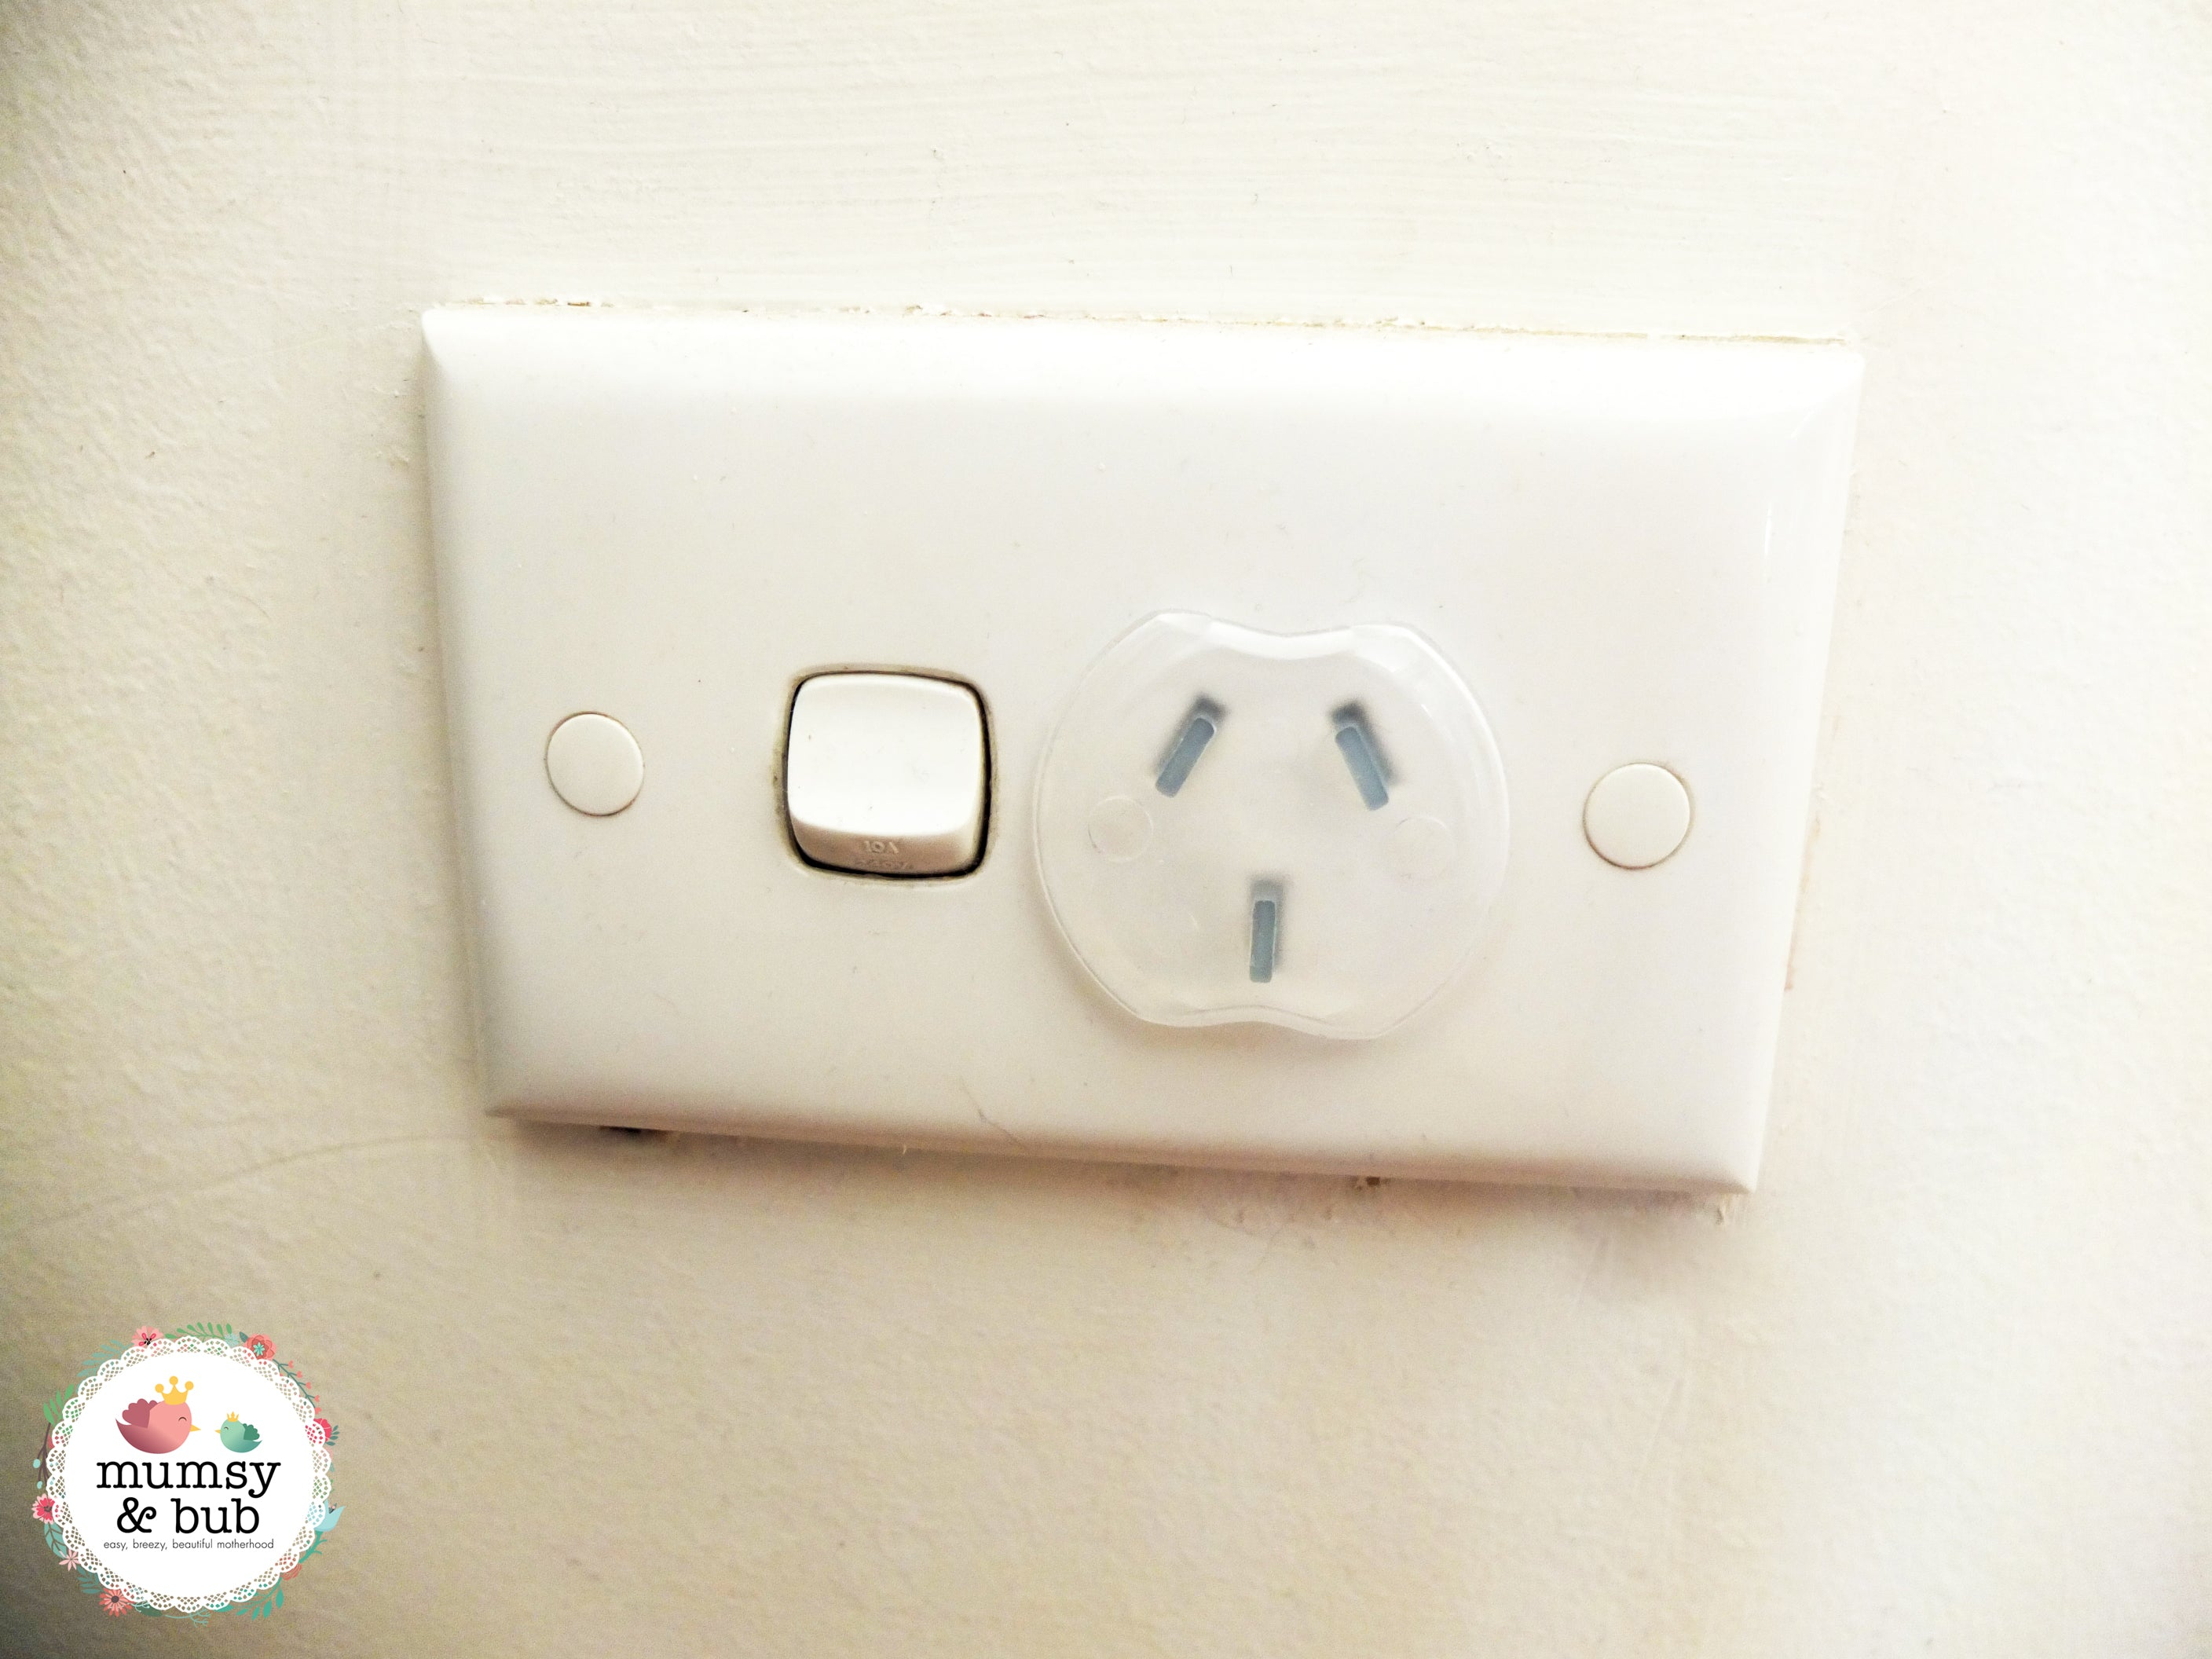 Outlet plugs for childproofing